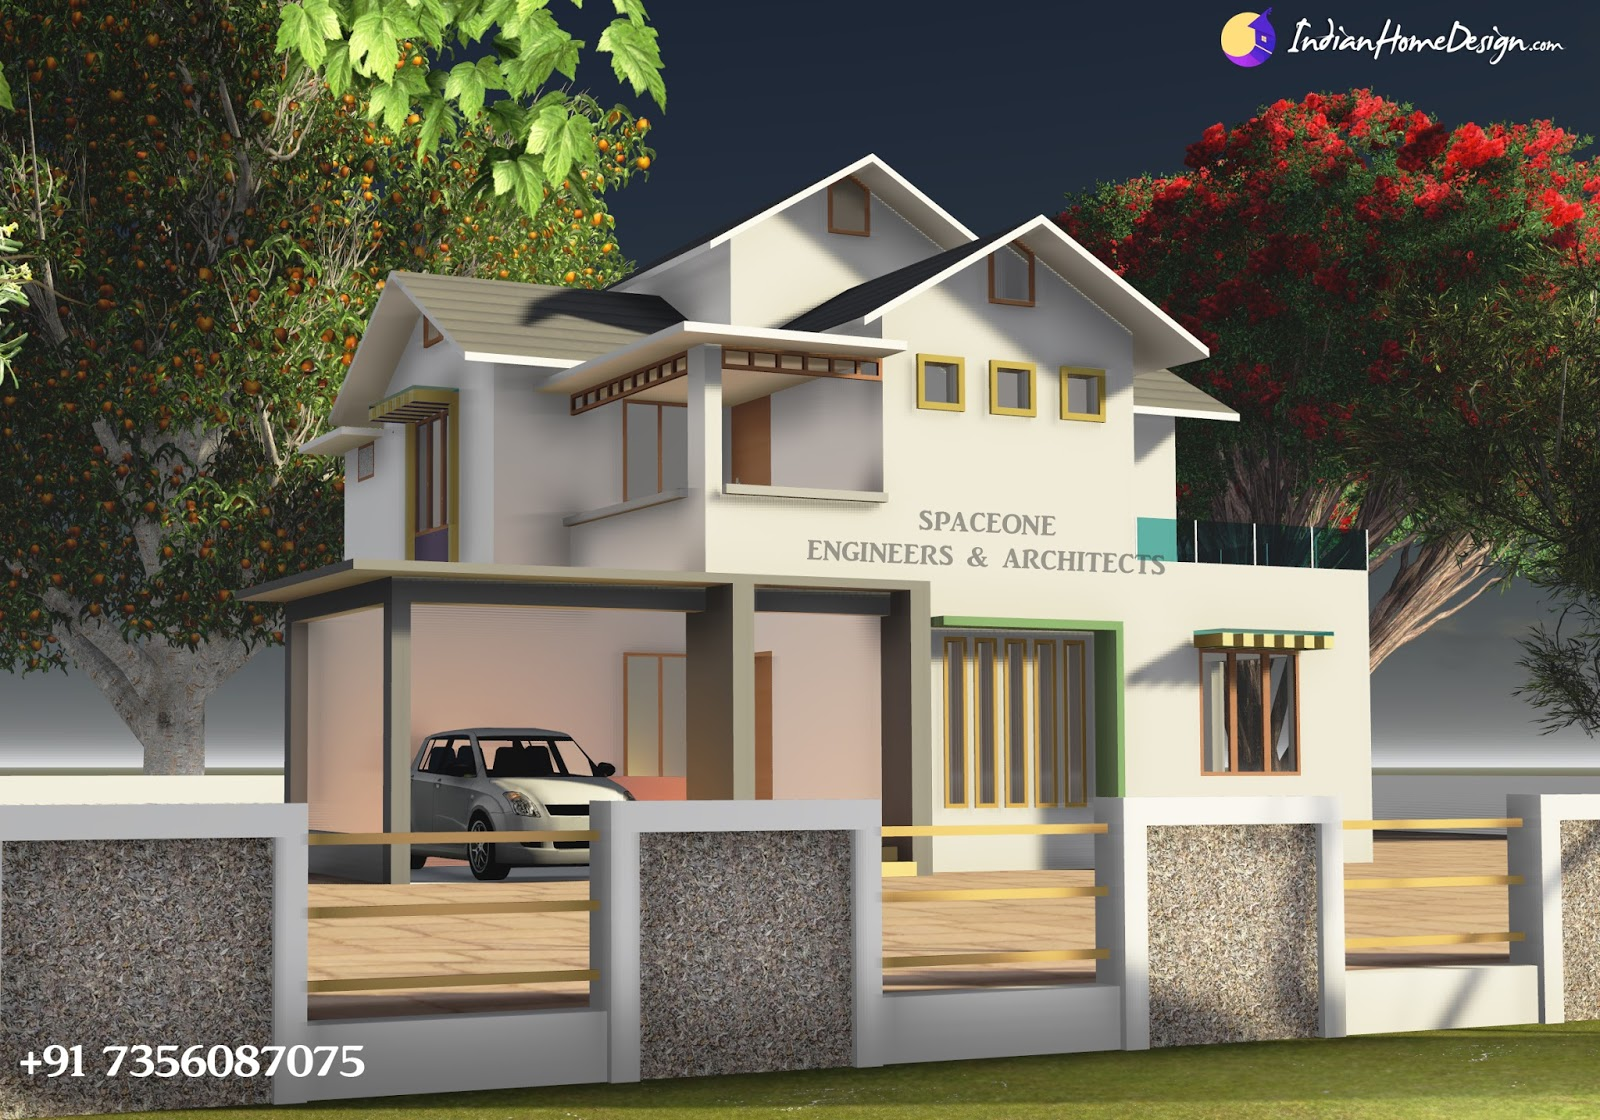 2450 sqft Modern house design for 5 cent plot by Spaceone Designers & Constructions